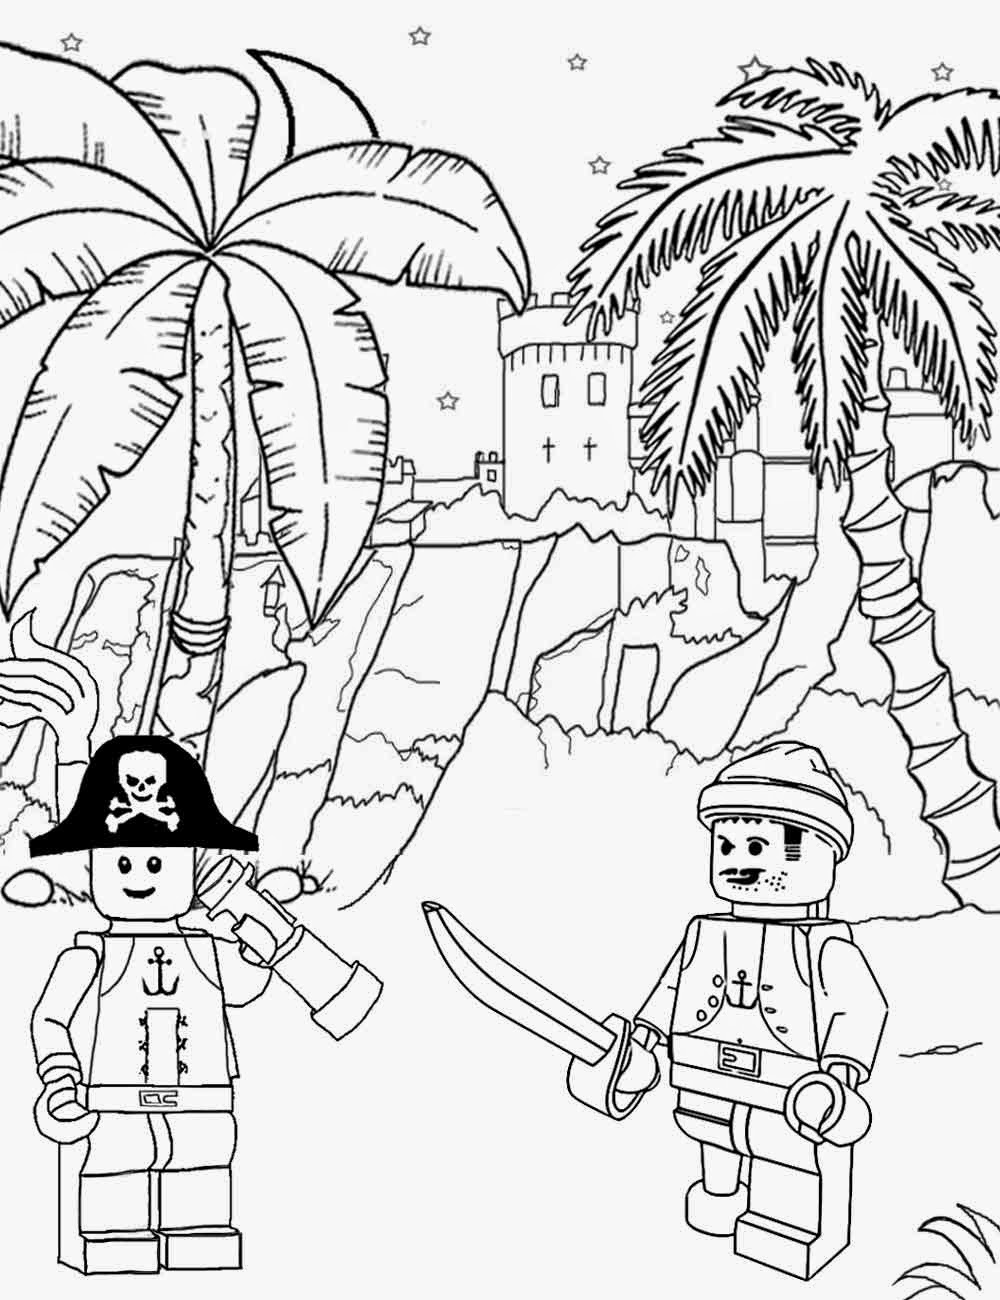 pirate lego coloring pages free coloring pages printable pictures to color kids pages pirate lego coloring